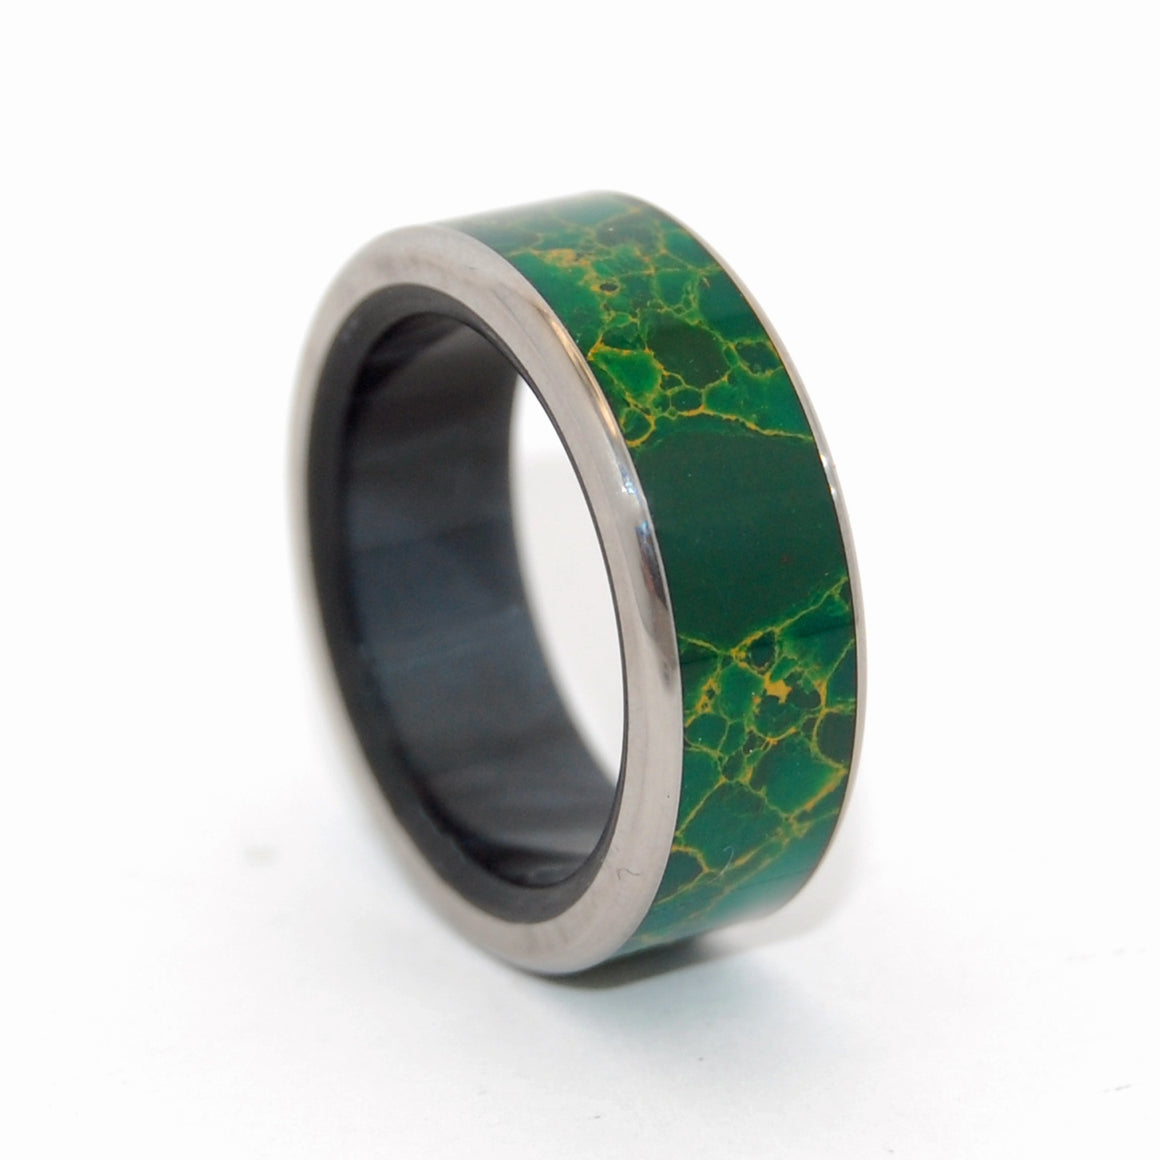 Lucine - She Knows | Egyptian Jade Titanium Wedding Ring - Minter and Richter Designs